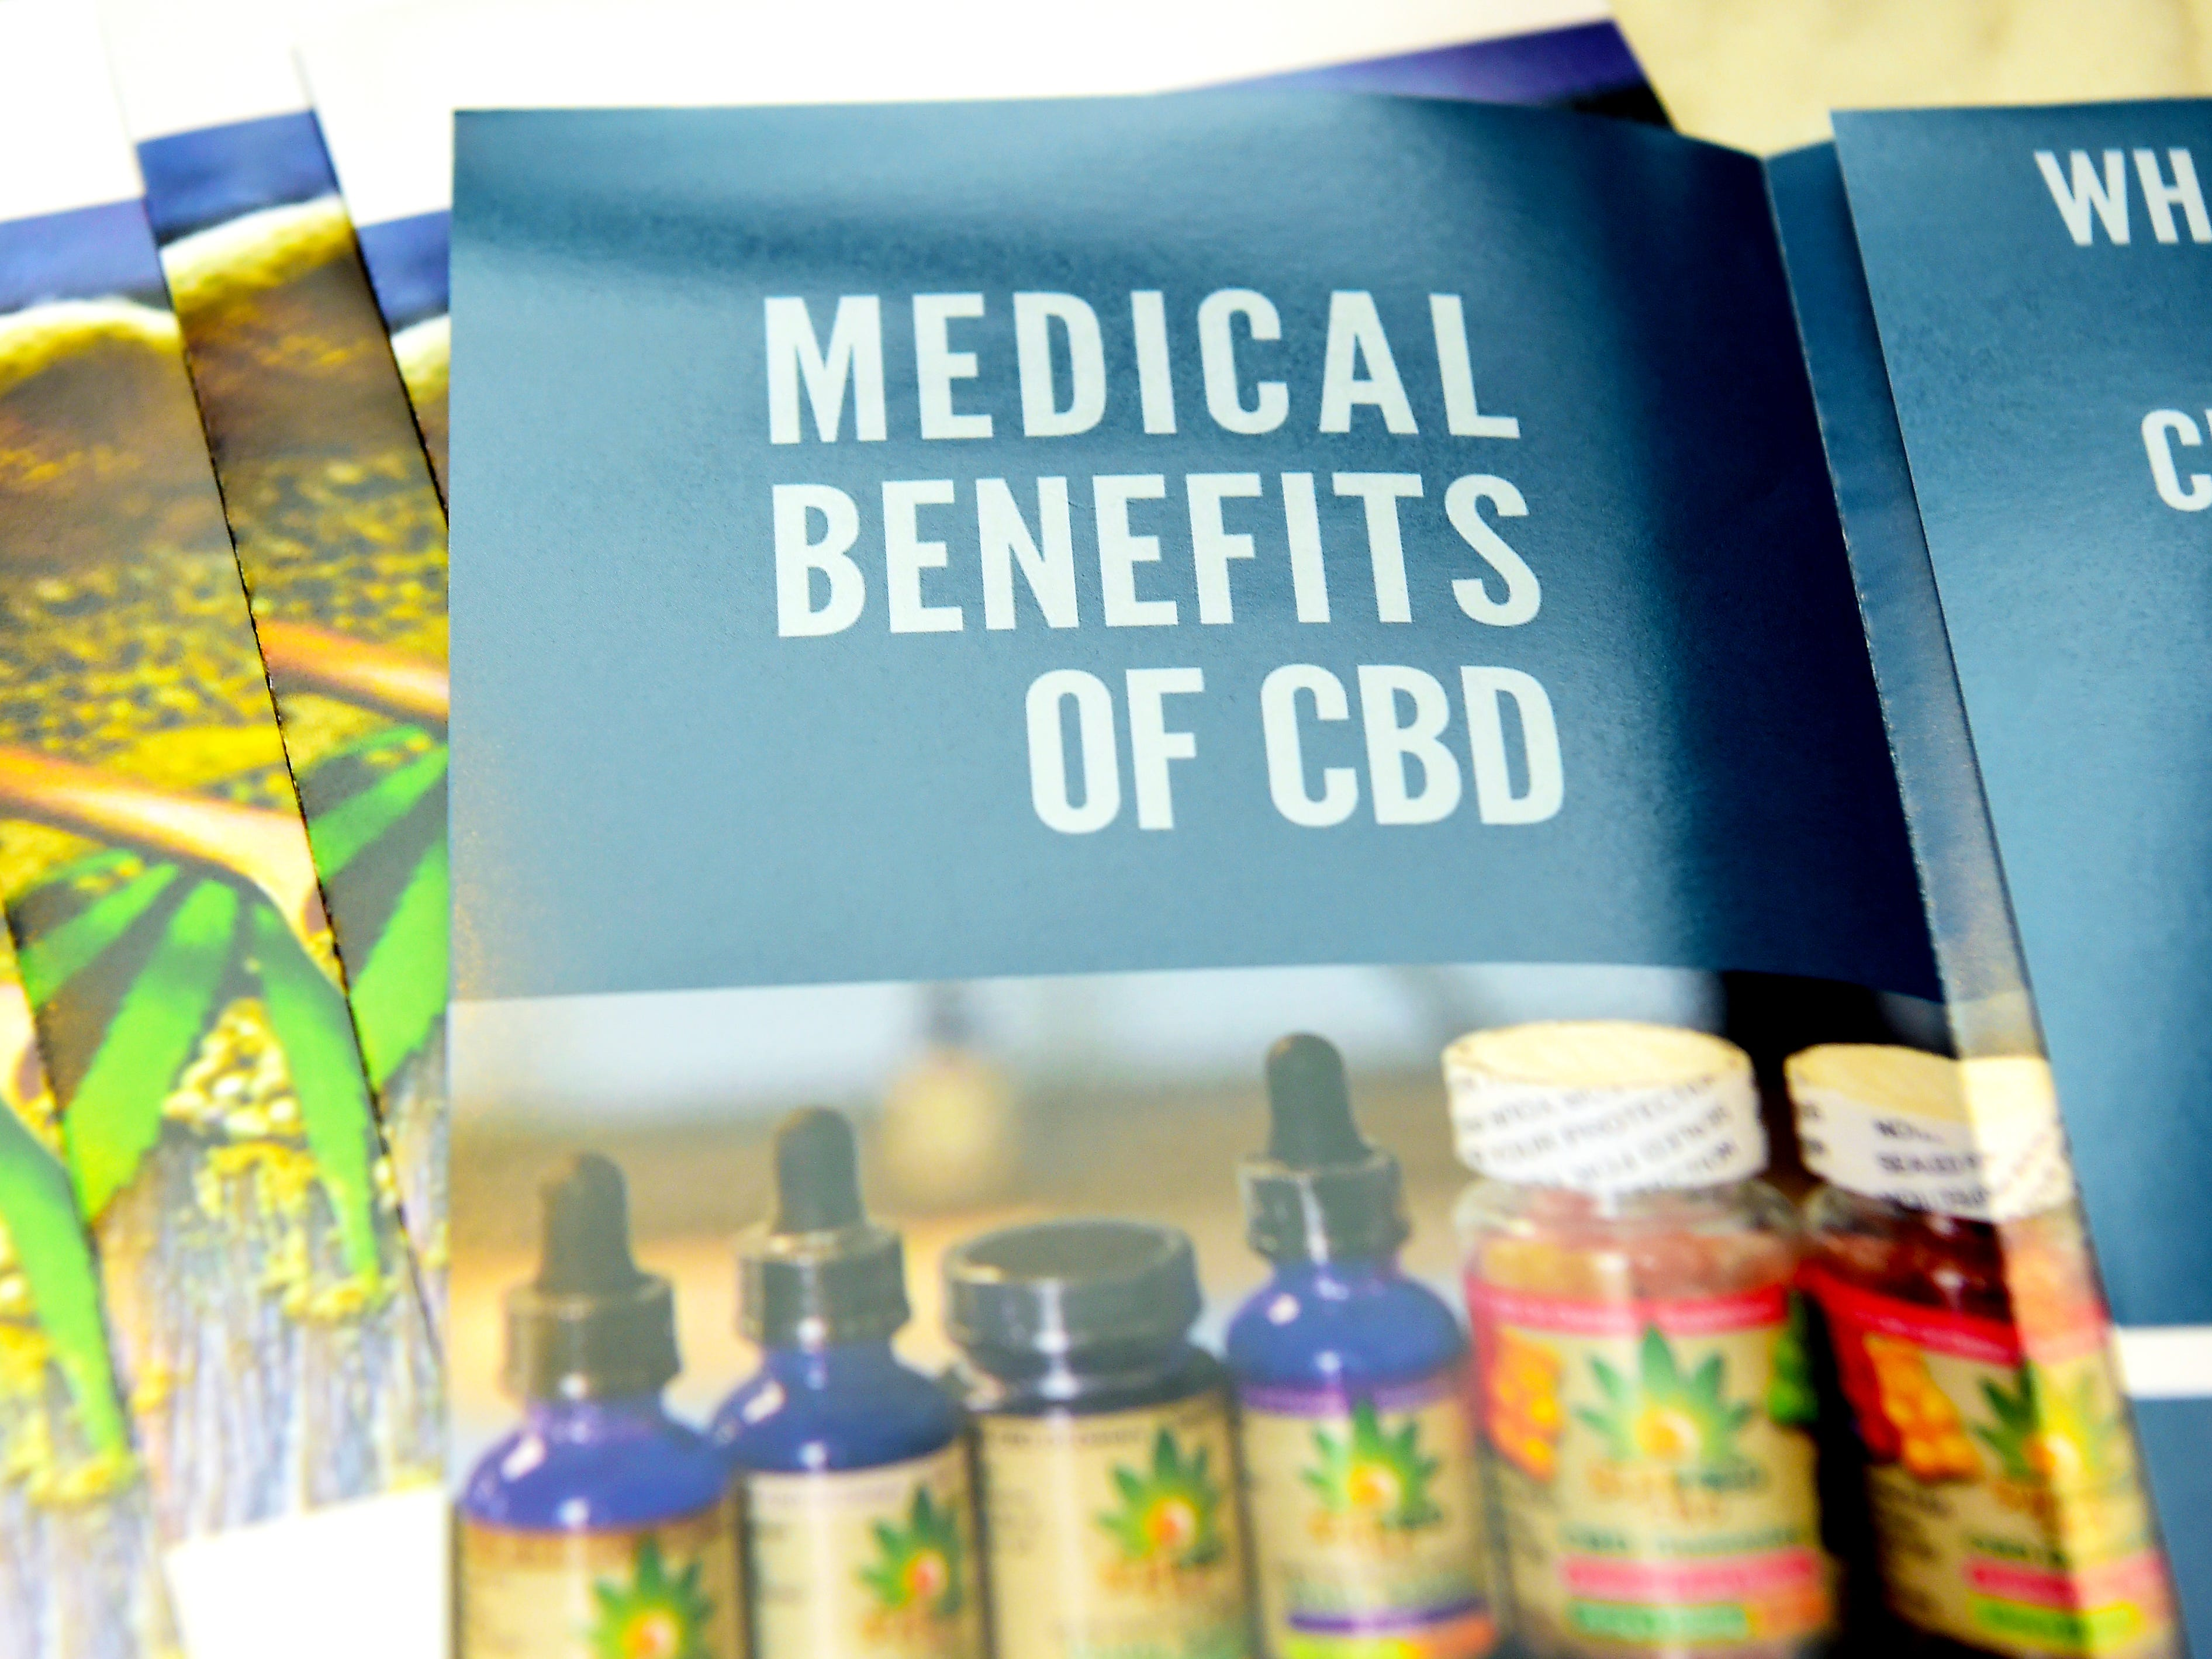 A pamphlet about the benefits of CBD oil in Your CBD Store in Ithaca.